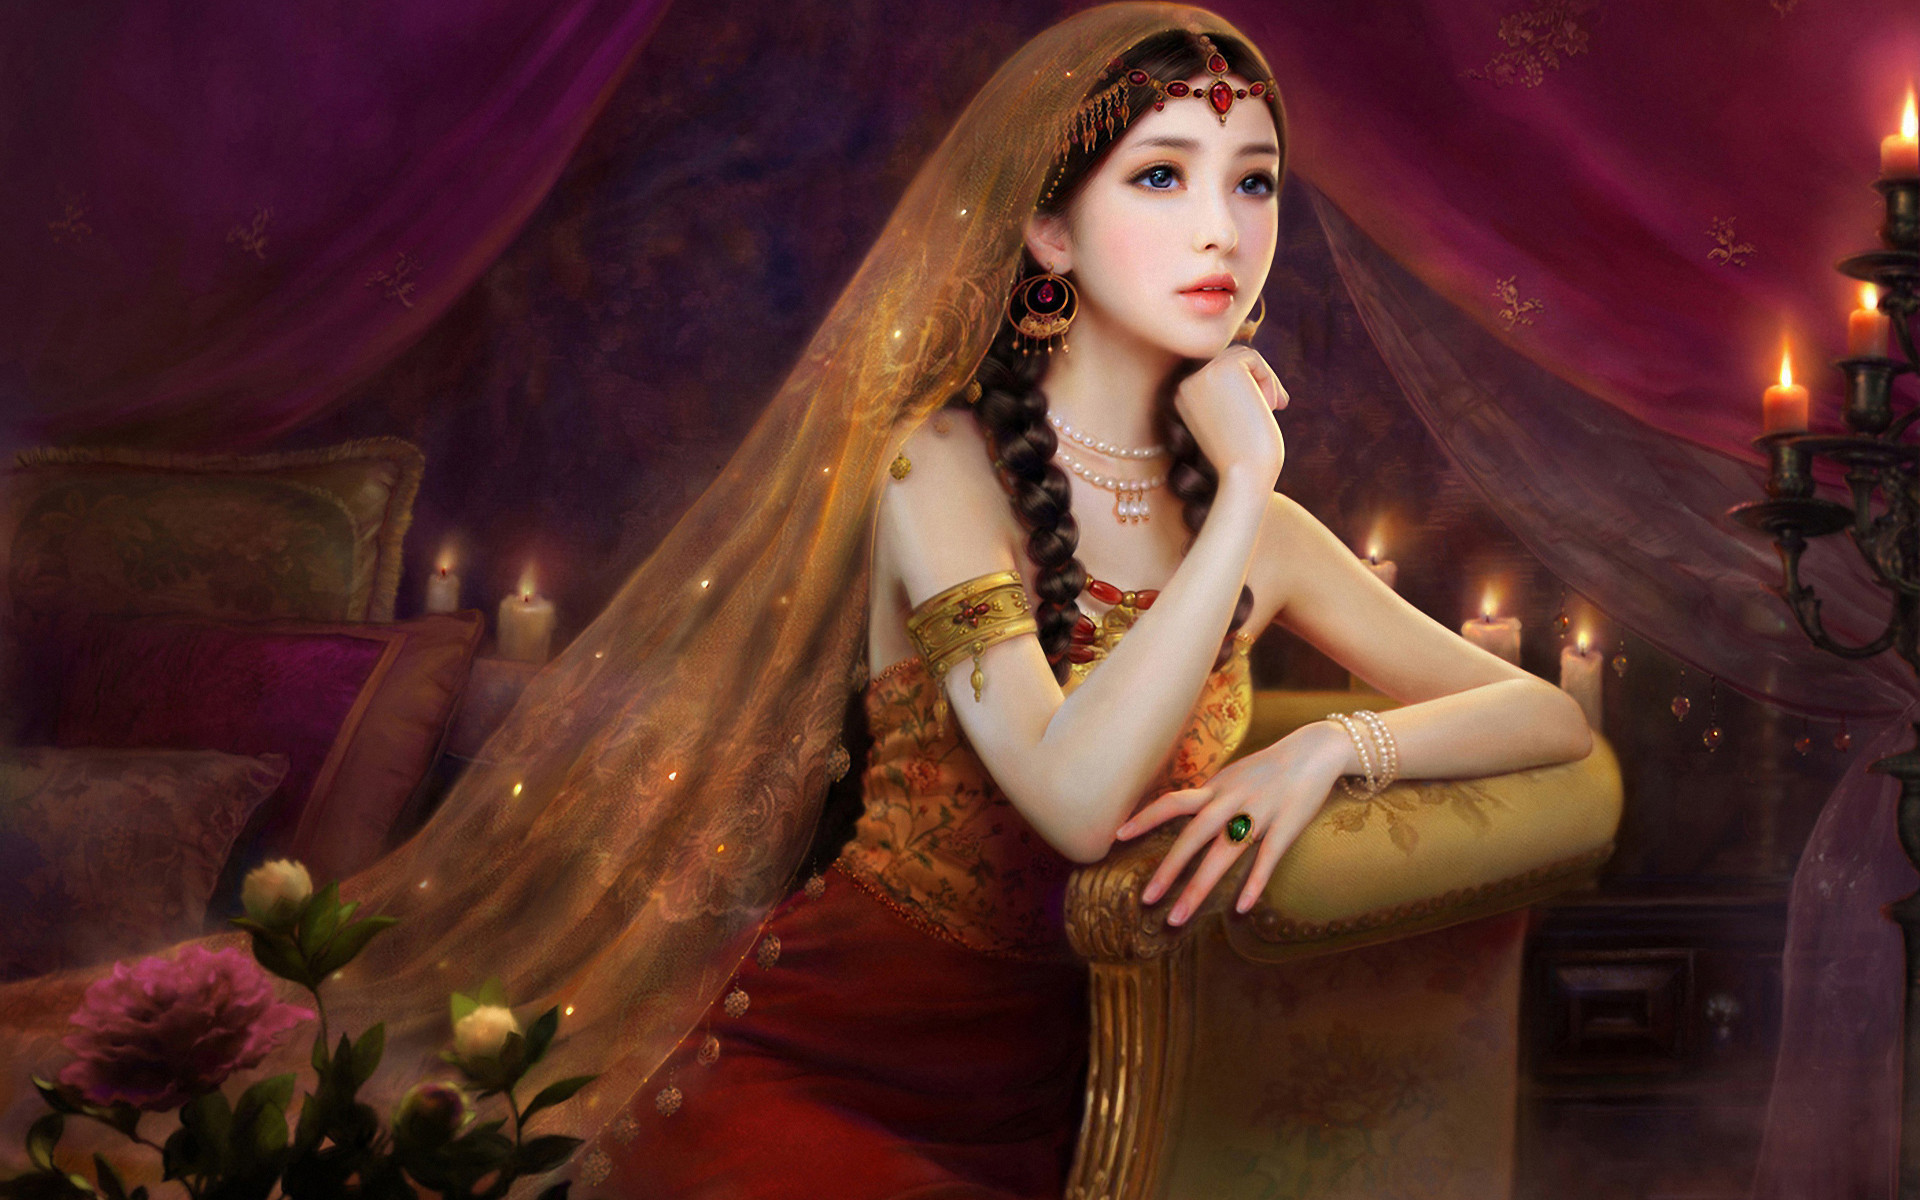 1920x1200  women fantasy girl painting wallpaper